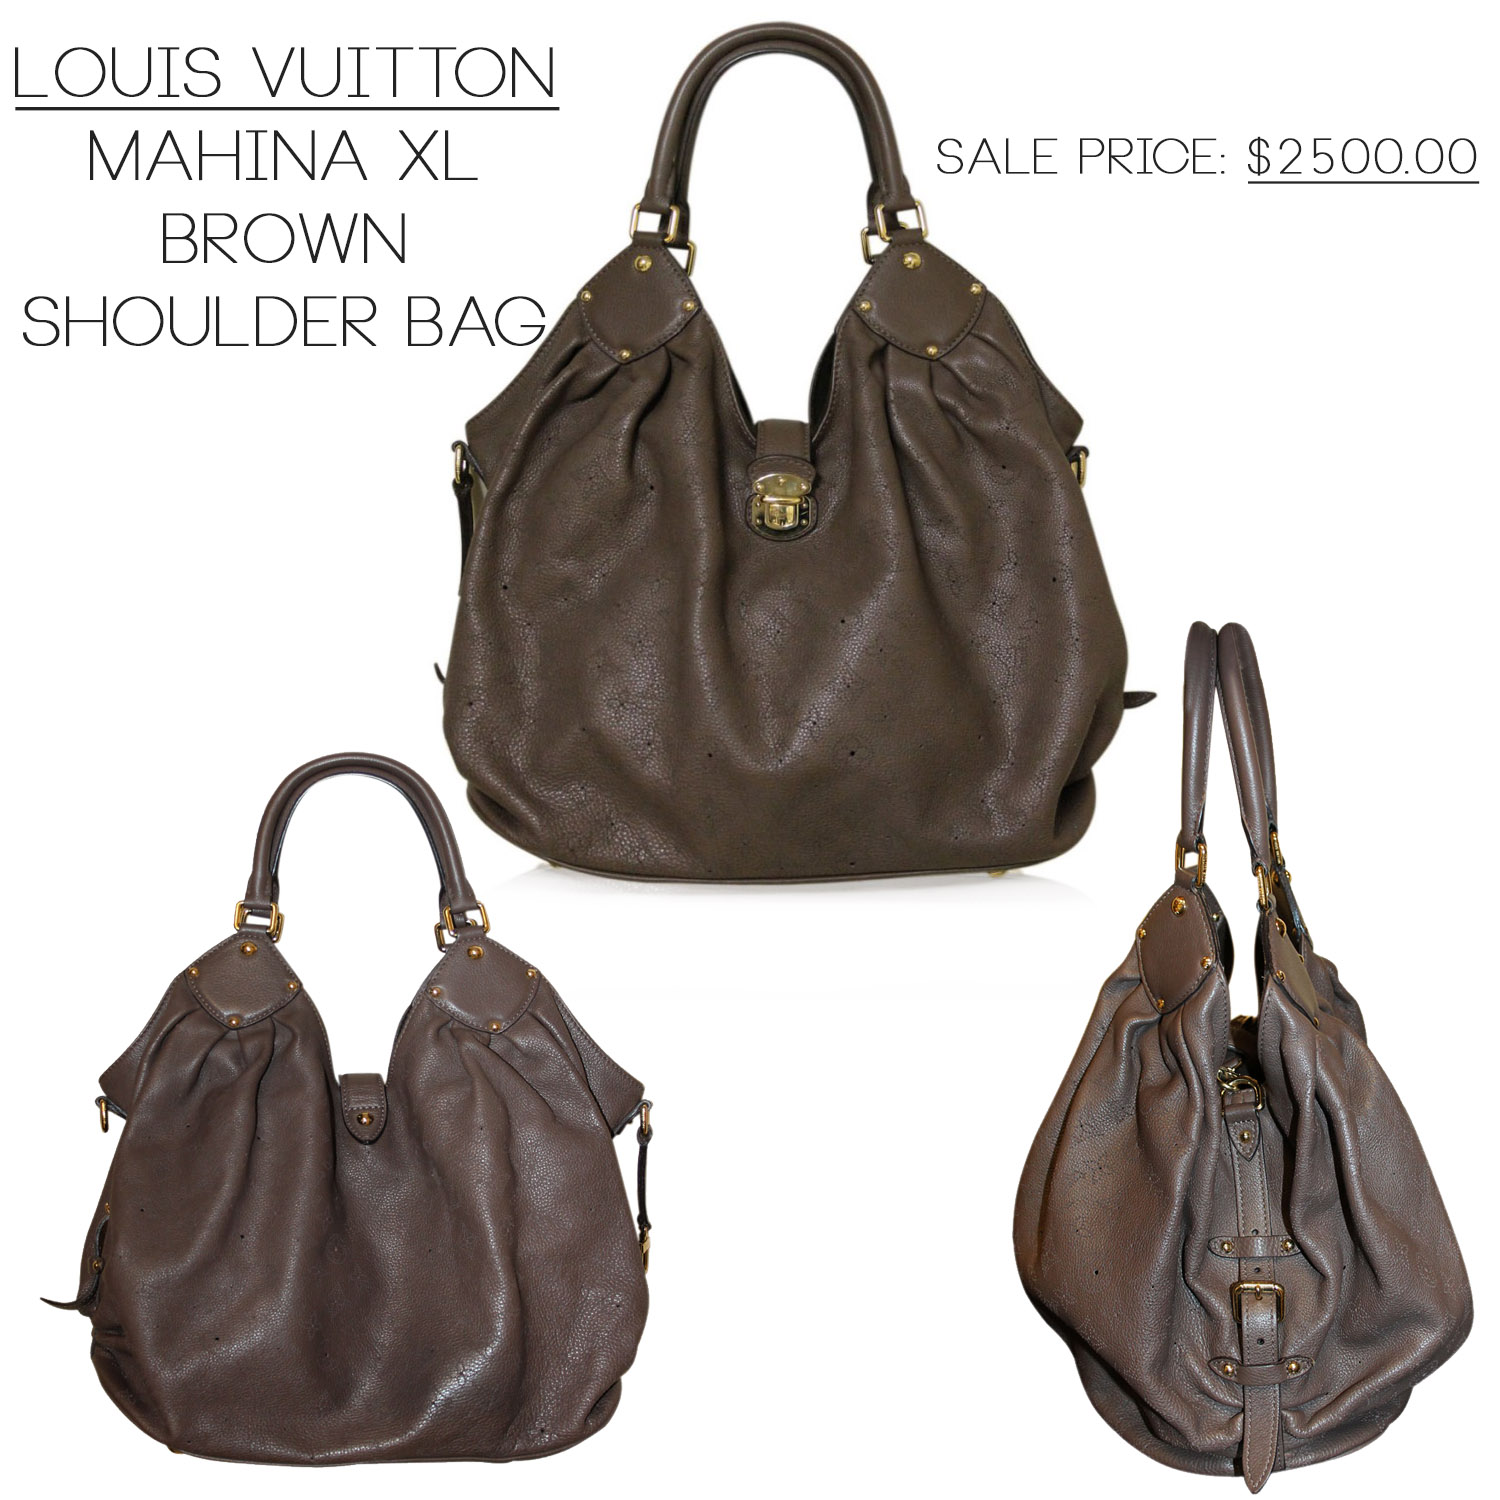 Louis Vuitton Brown Mahina XL Shoulder Bag